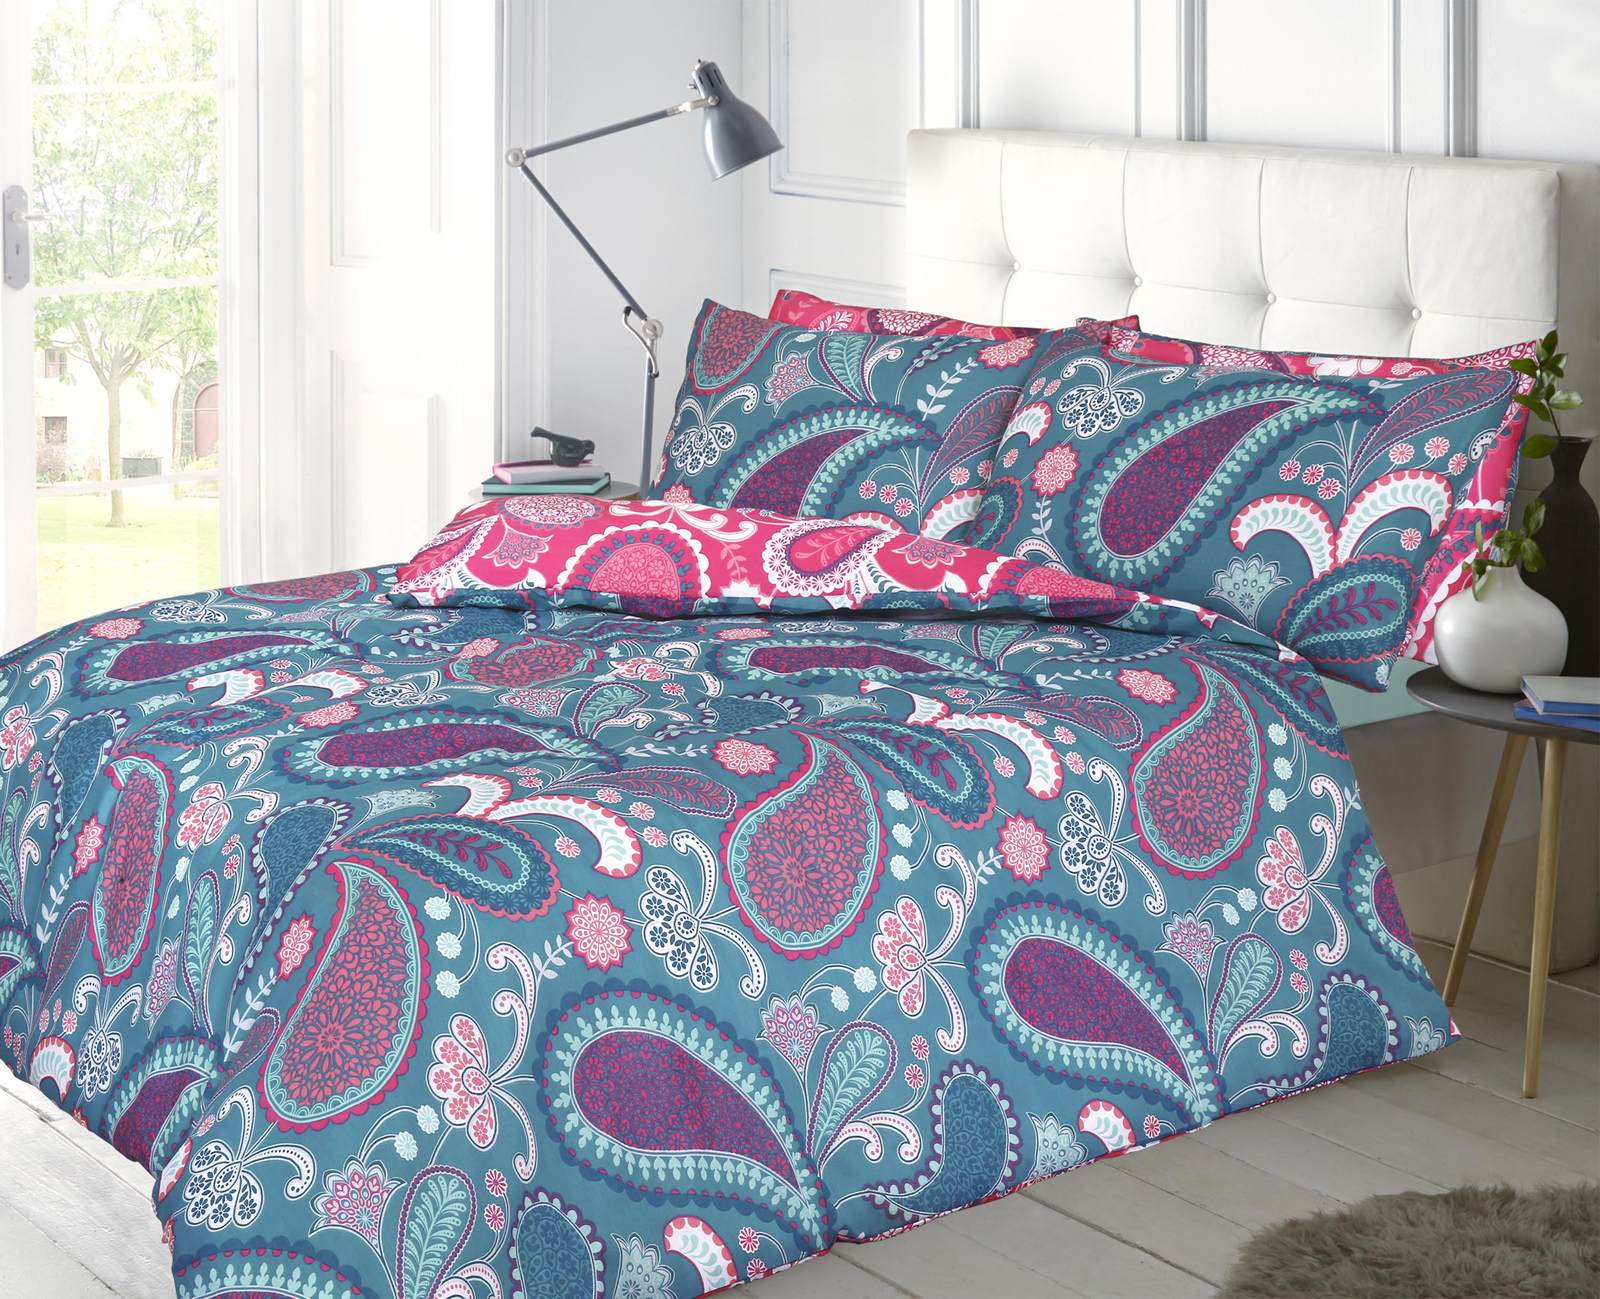 Paisley Duvet Cover Set Wholesale Bedding Store De